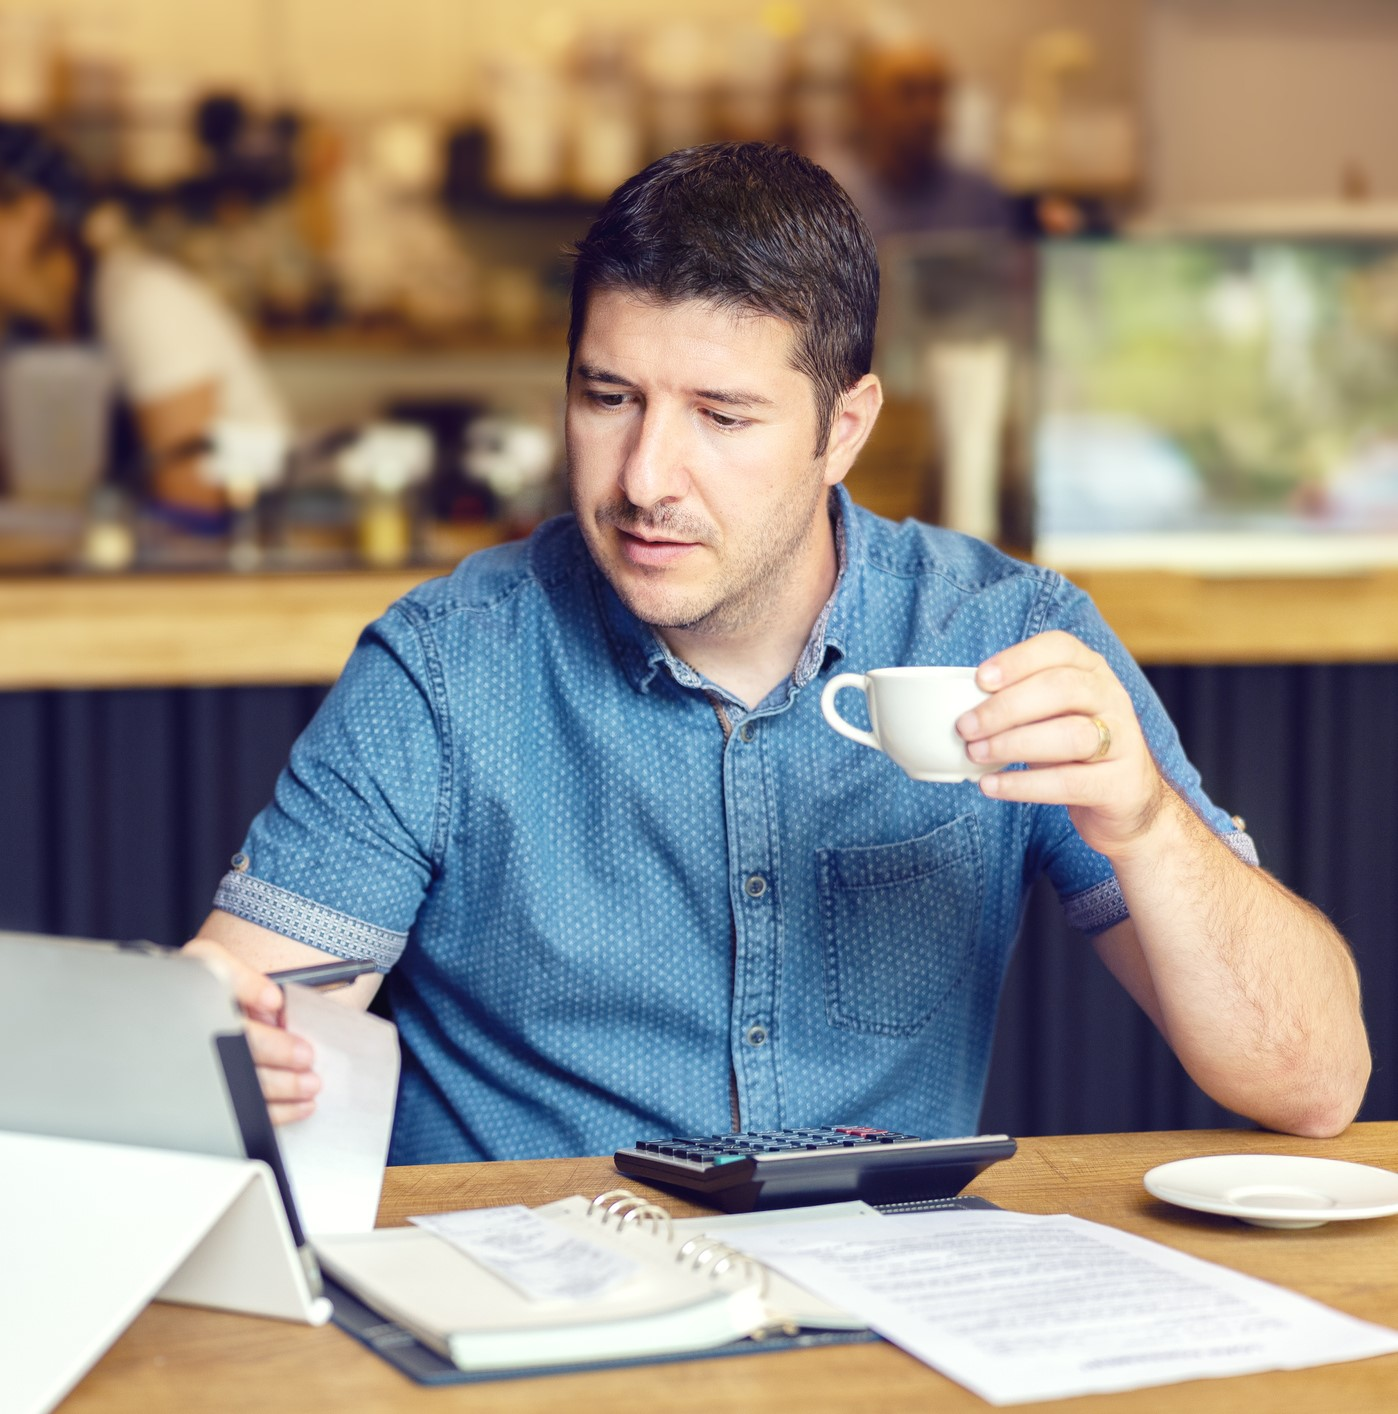 man working in the coffee shop